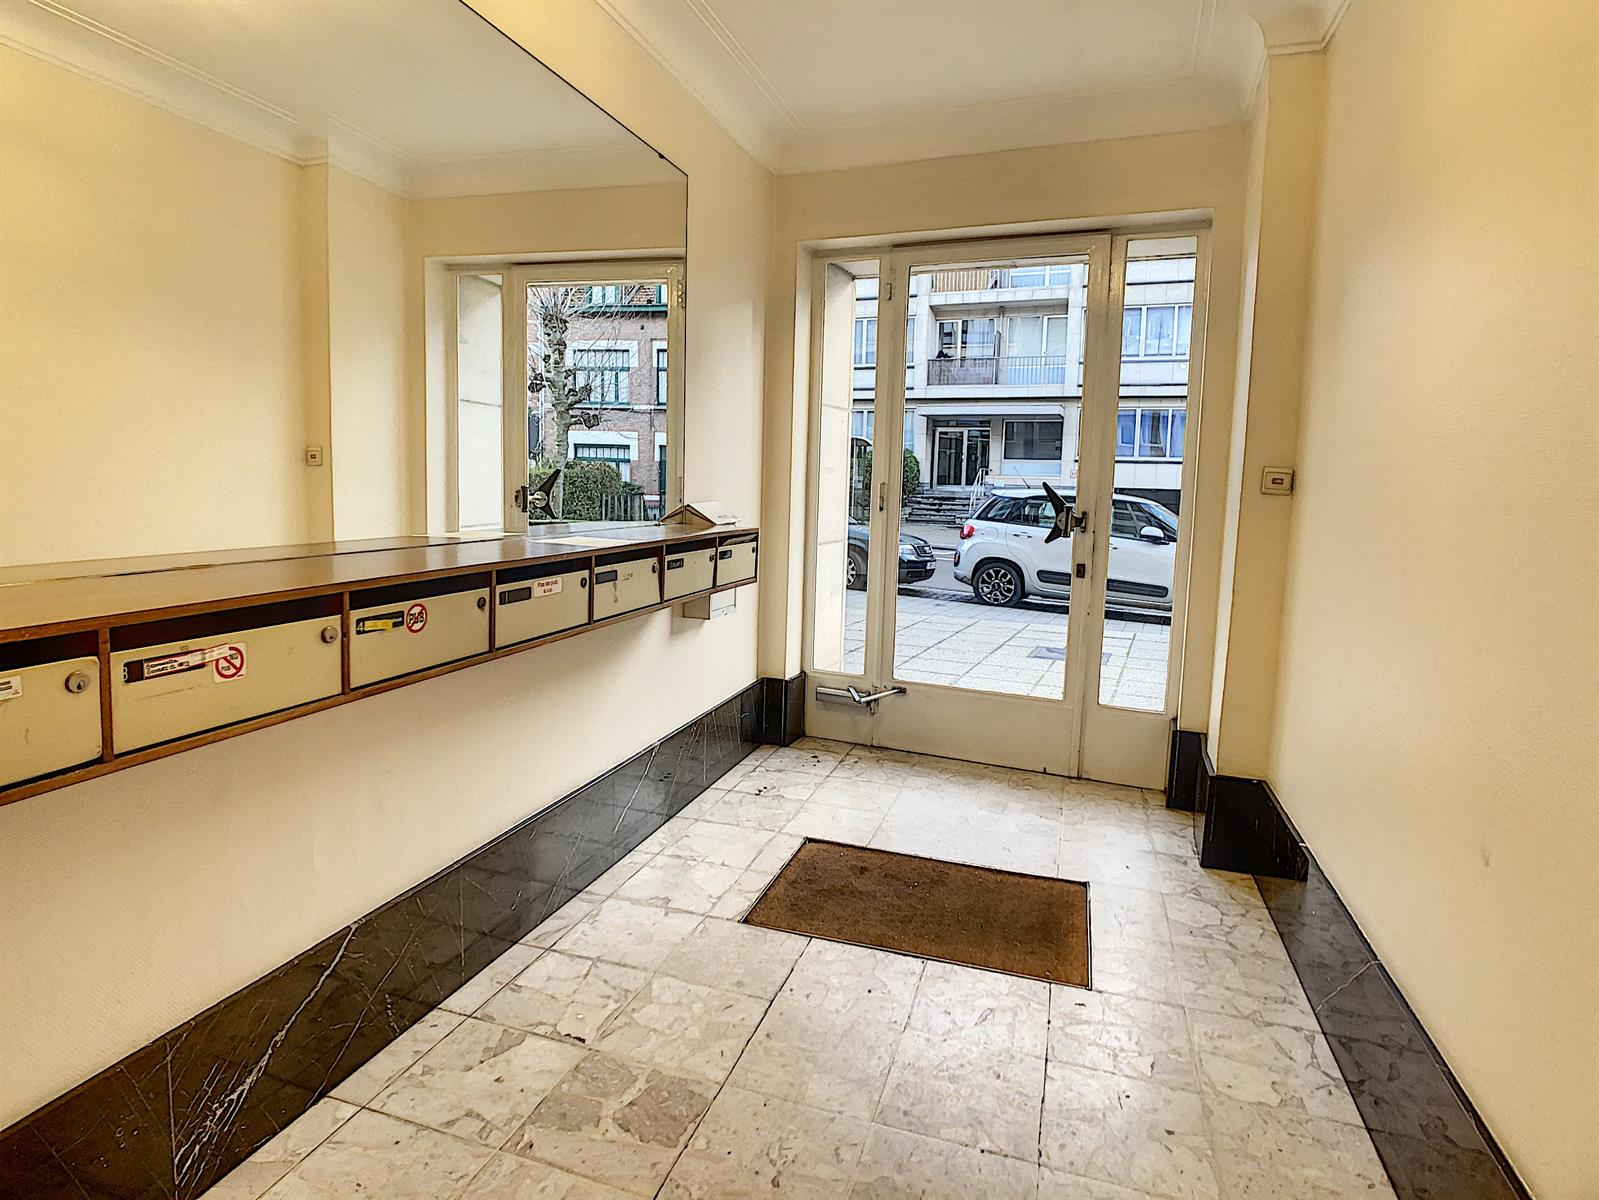 Appartement - Uccle - #4239849-12